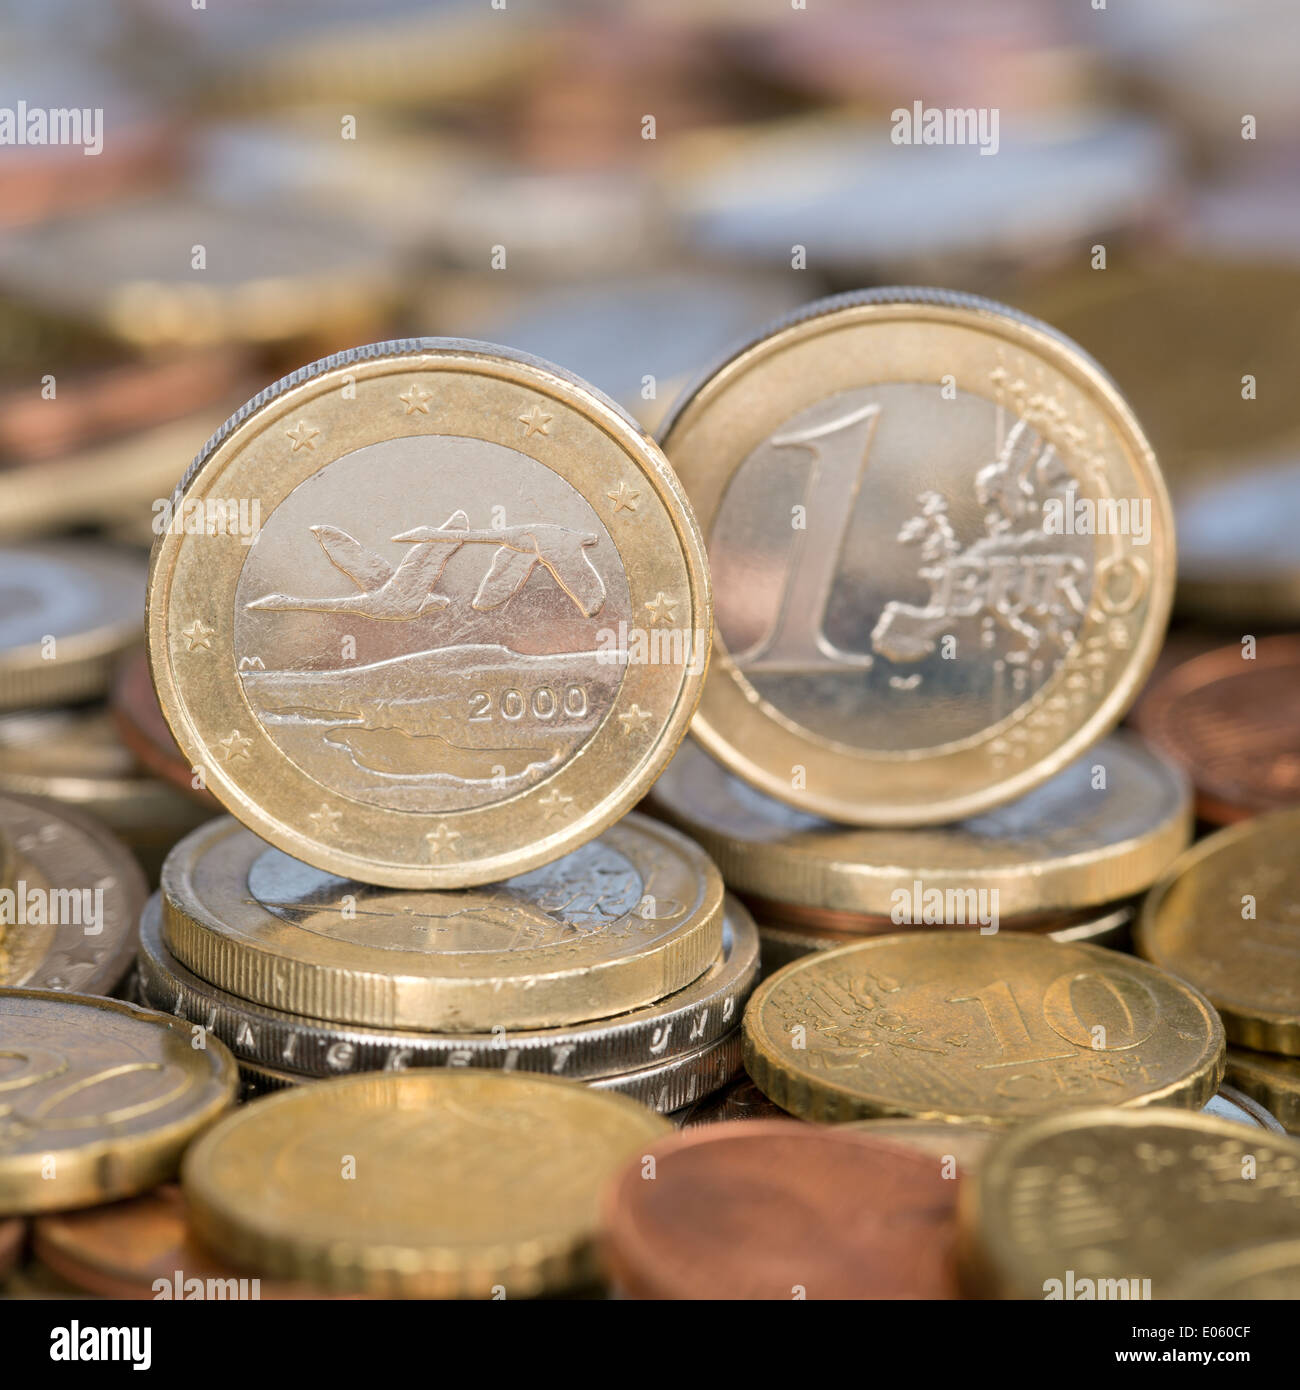 A one Euro coin from the European Union currency member country Finland - Stock Image